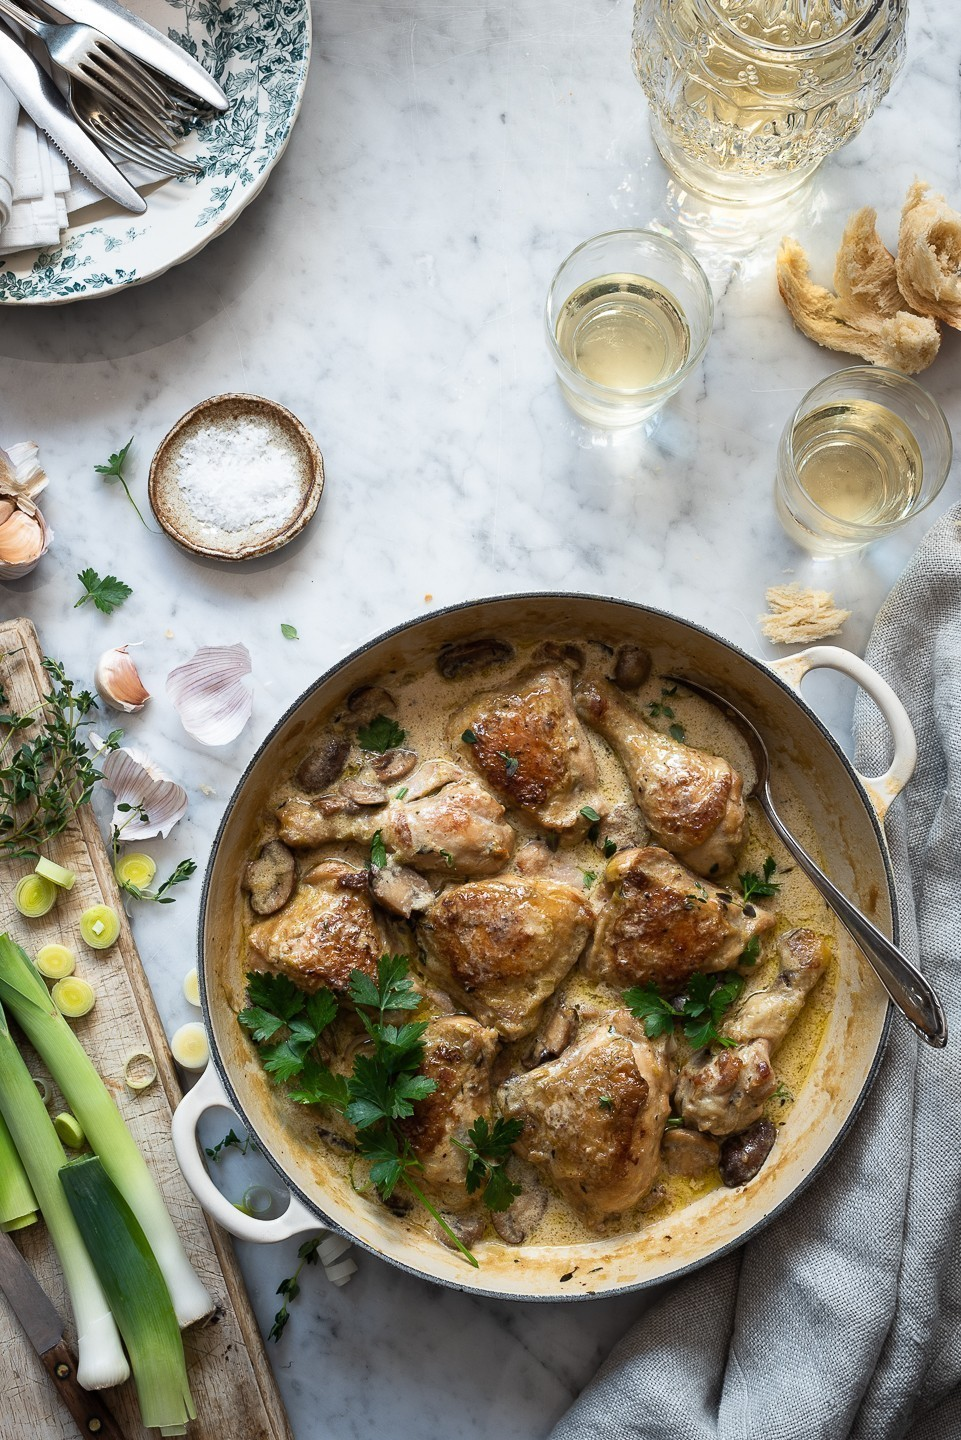 Chicken and leek casserole